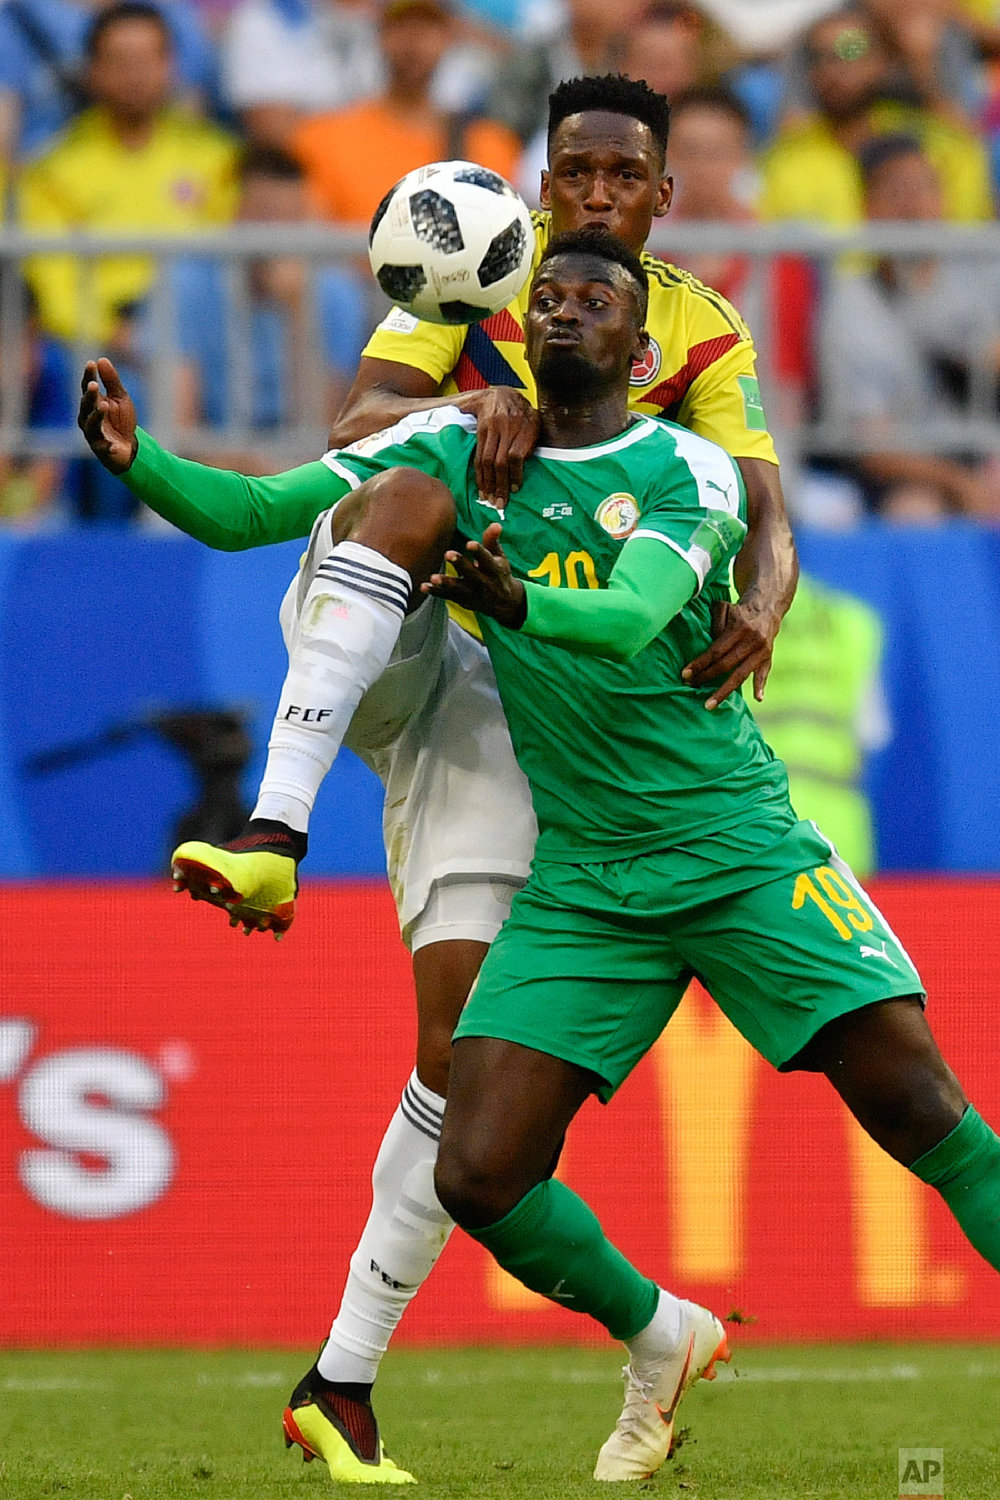 Senegal's Mbaye Niang, bottom, vies for the ball with Colombia's Oscar Murillo, top, during the group H match between Senegal and Colombia, at the 2018 soccer World Cup in the Samara Arena in Samara, Russia, Thursday, June 28, 2018. (AP Photo/Martin Meissner)